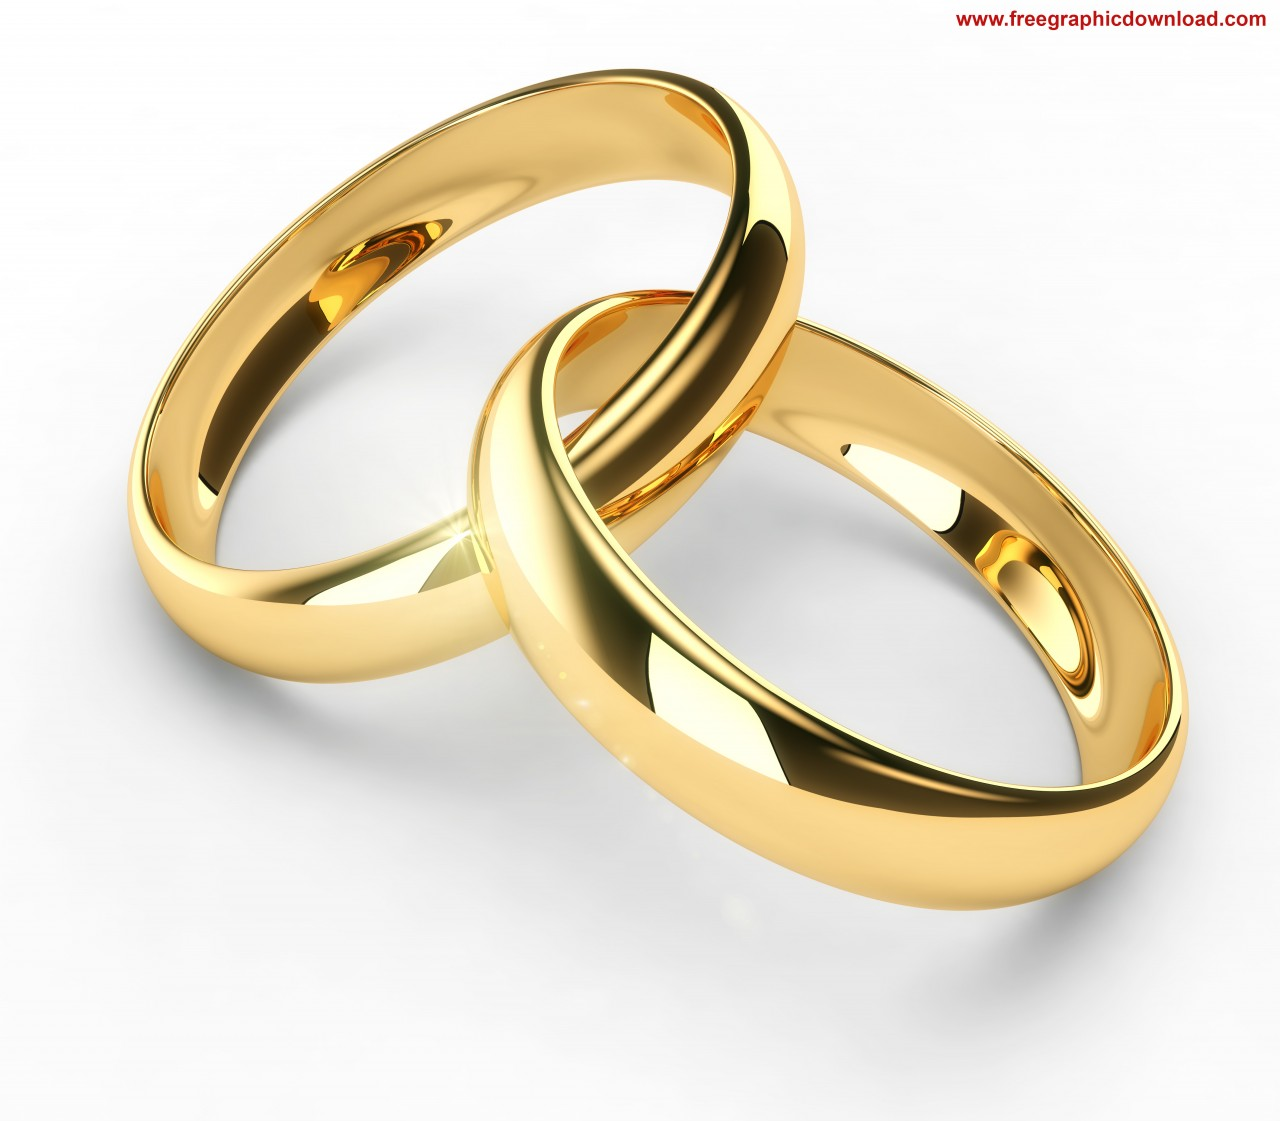 gold wedding rings clip art the wedding design guide - Pics Of Wedding Rings